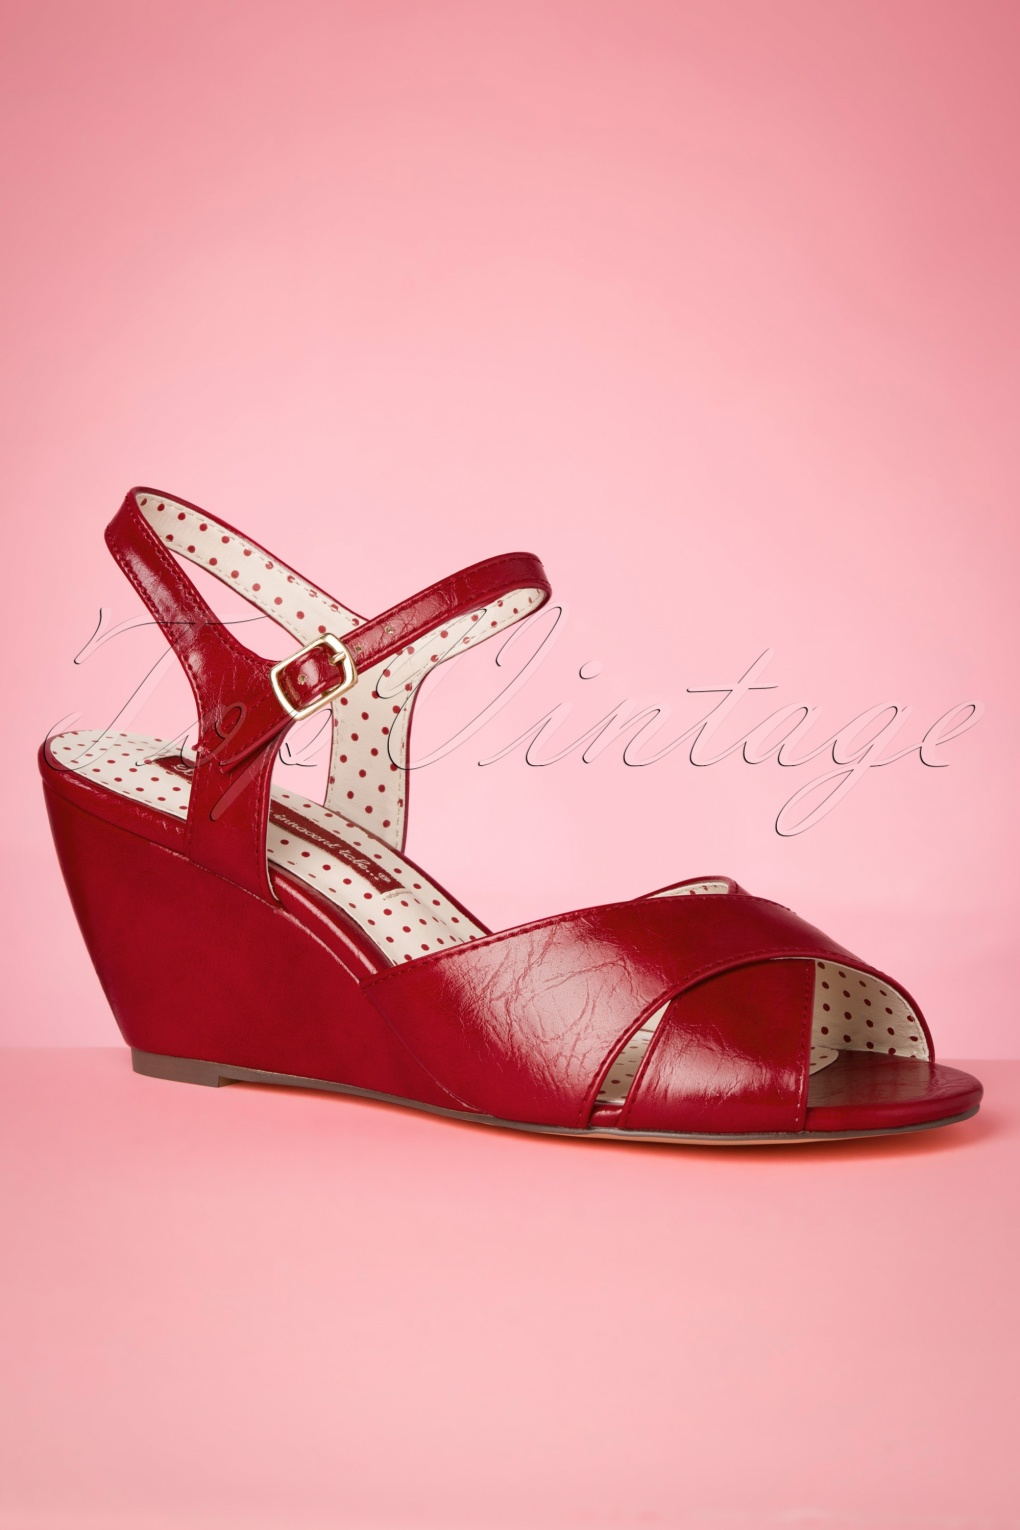 Pin Up Shoes- Heels, Pumps & Flats 50s Dima Wedge Sandals in Red £72.06 AT vintagedancer.com